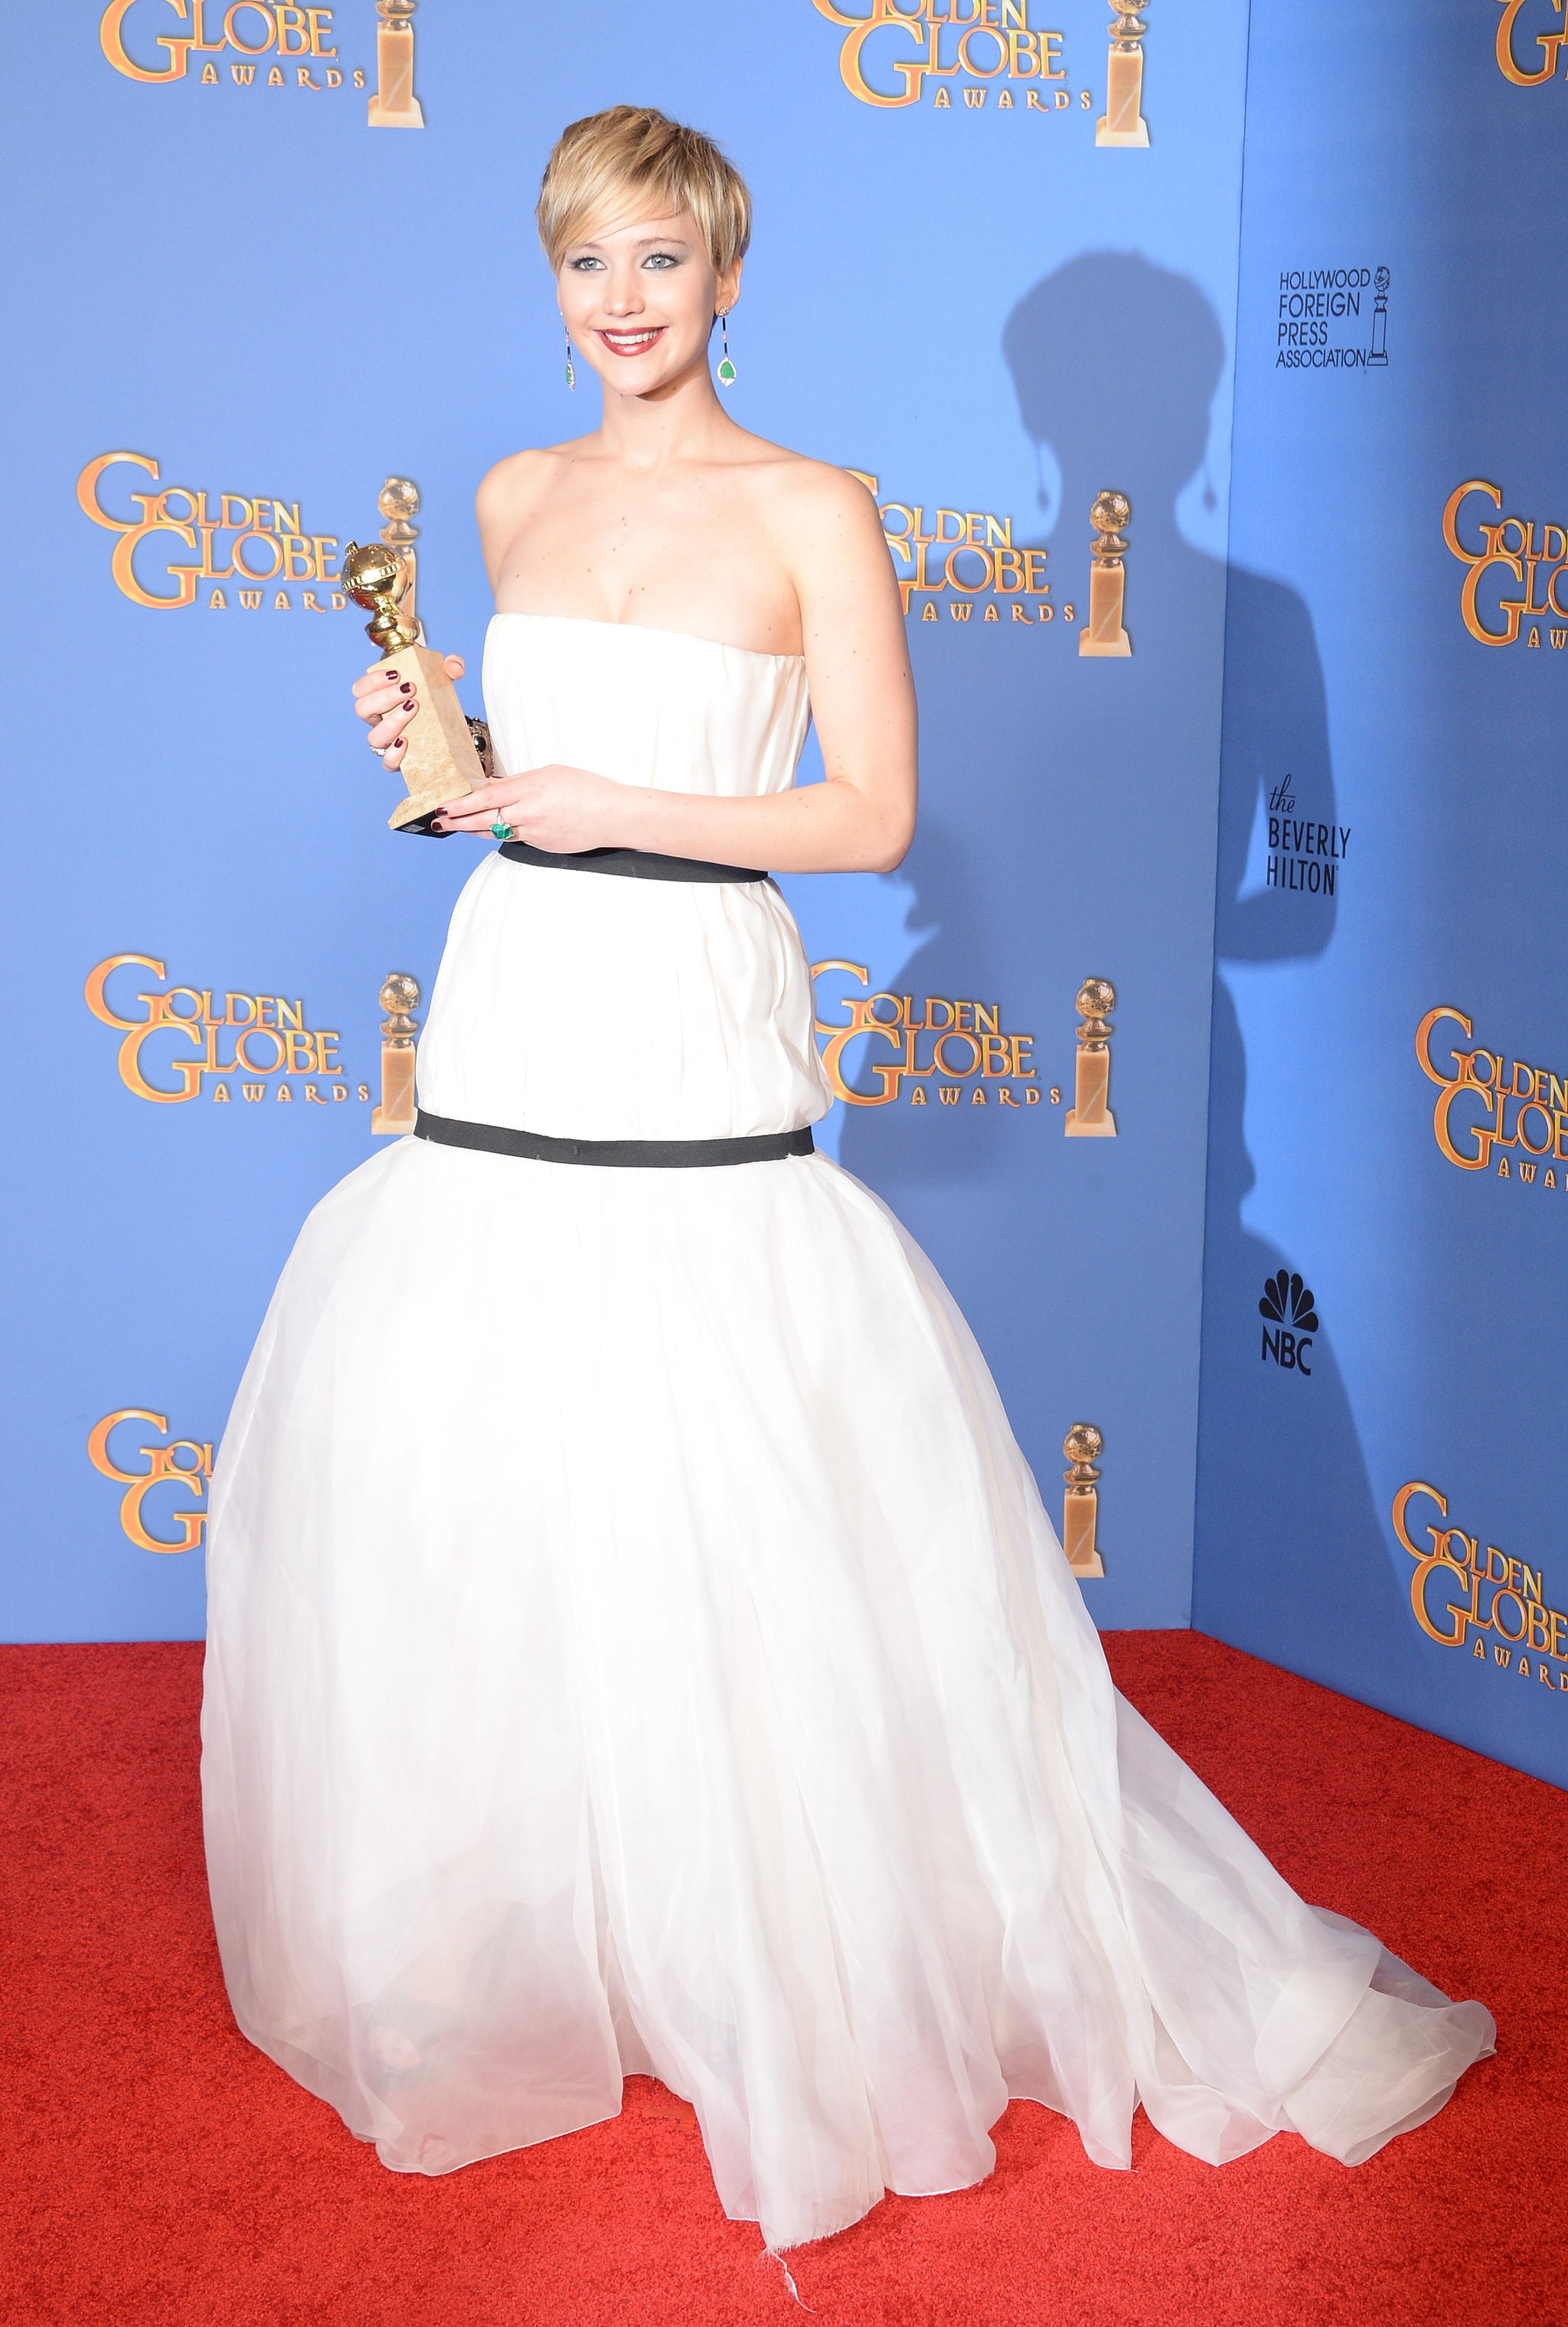 When Jennifer won best supporting actress for her role in American Hustle at the 71st annual Golden Globes, she wore this double-banded Dior gown, which stirred up the Internet and resulted in yet another meme for the star.